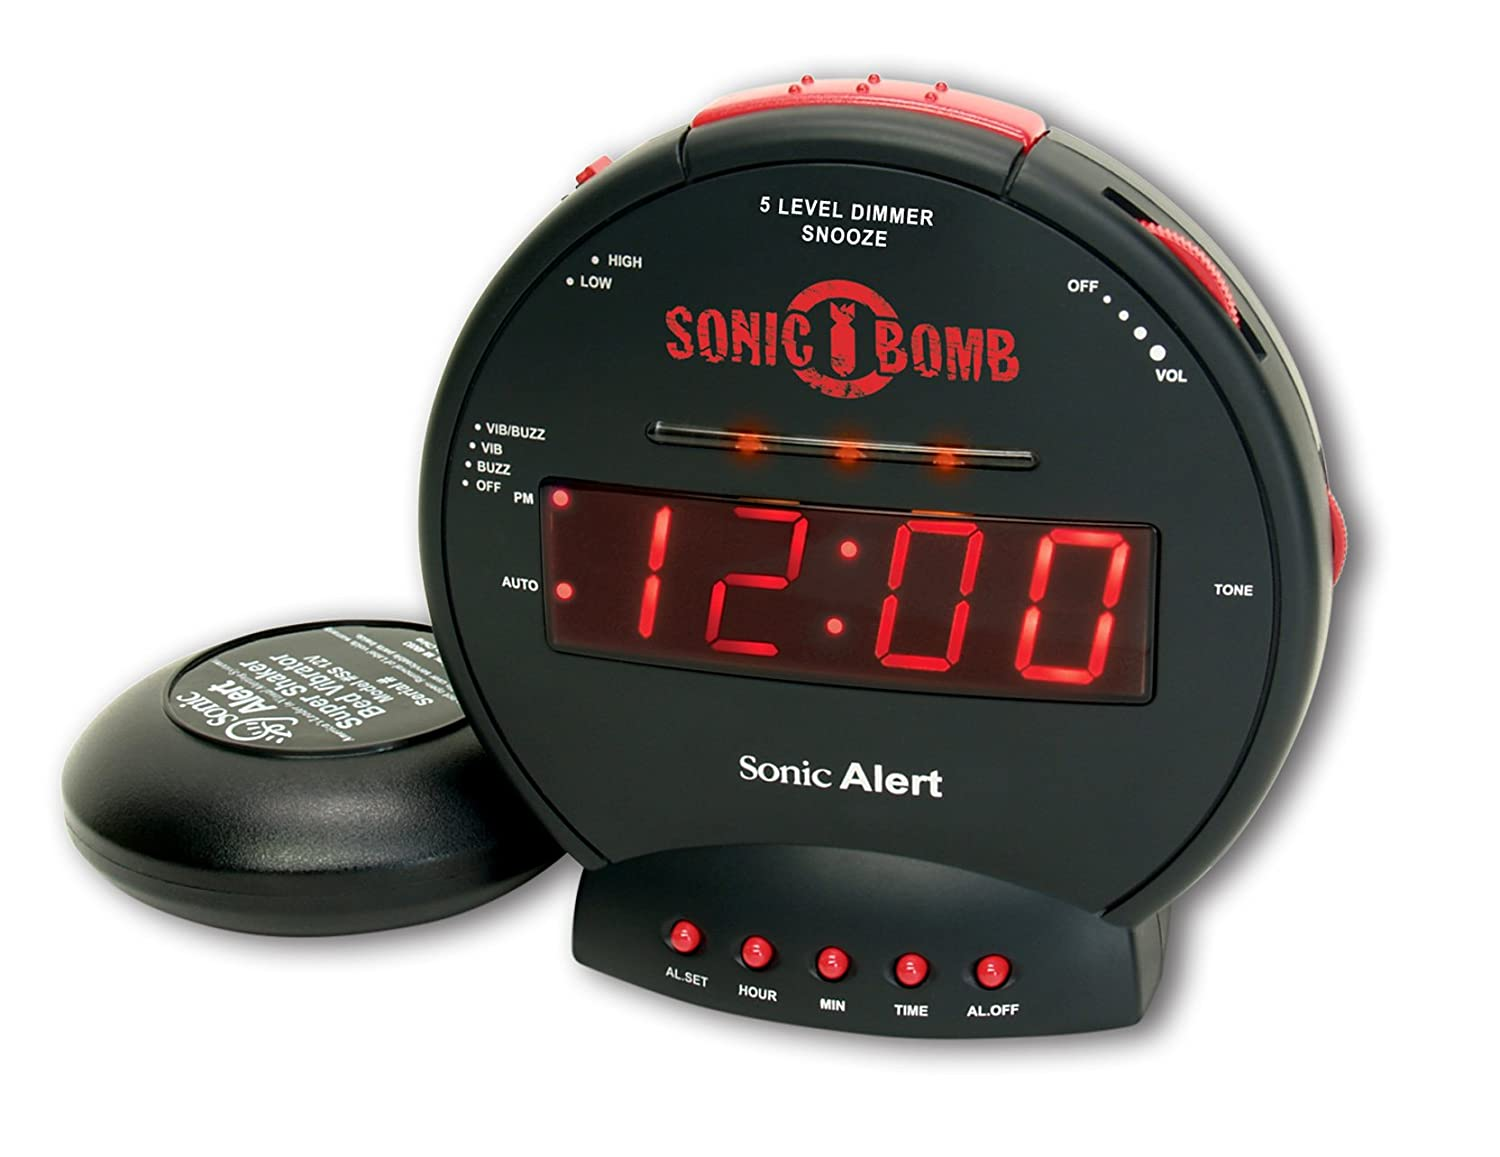 Sonic Alert Sbb500ss Bomb Extra Loud Dual Alarm How To Fit A Dimmer Switch Wiring Light Switches Diy Doctor Clock With Red Flashing Lights And Powerful Bed Shaker Home Audio Theater